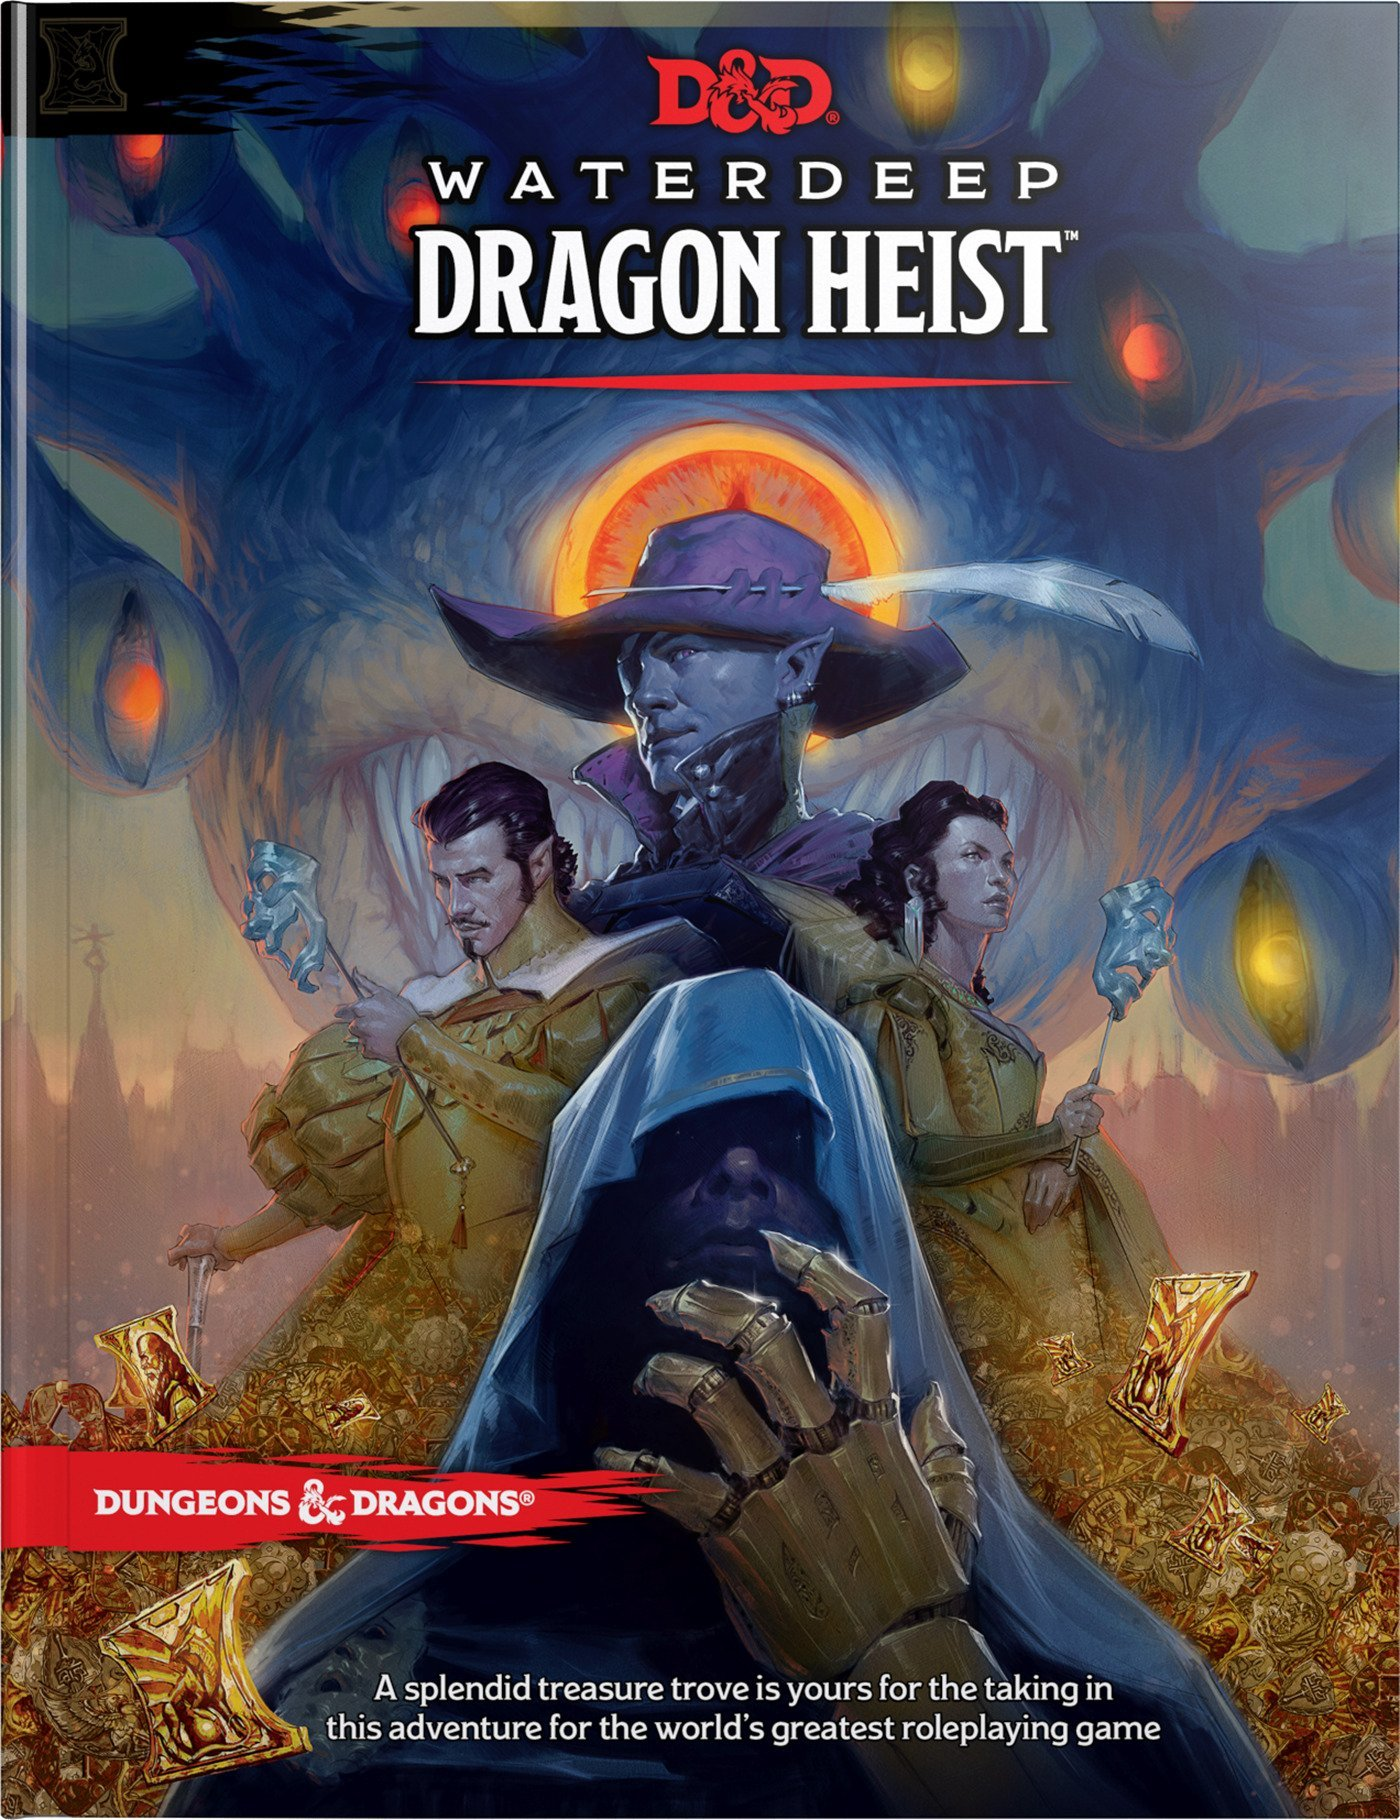 Dungeons and Dragons - Waterdeep Dragon Heist Book (D&D) (English)